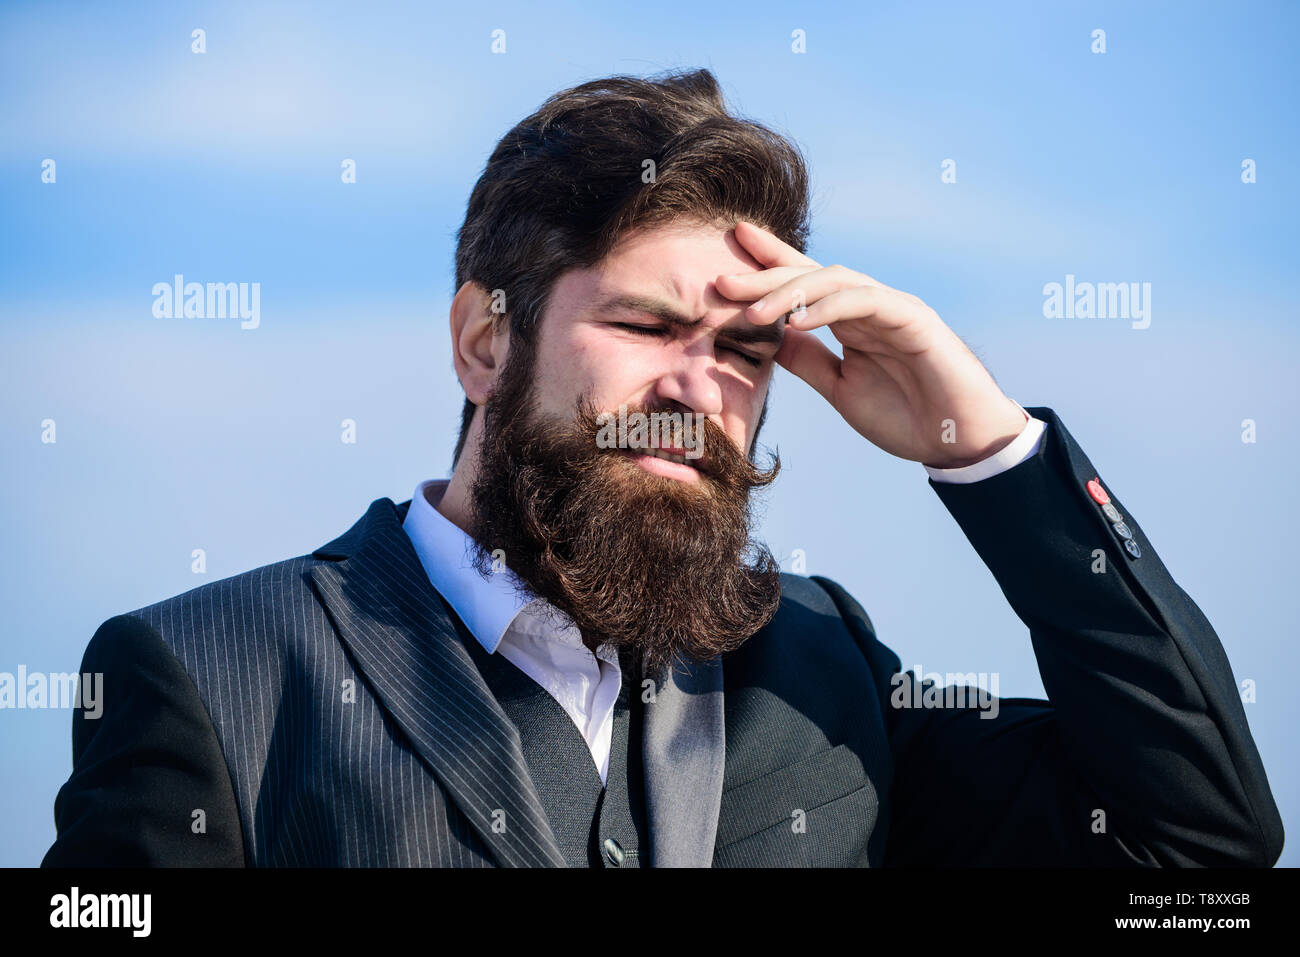 Guy suffer headache stressful day. Stressful business. Pain and migraine. Frustration and disappointment. Unforgivable mistake. Business failure. Man bearded stressful painful face sky background. - Stock Image